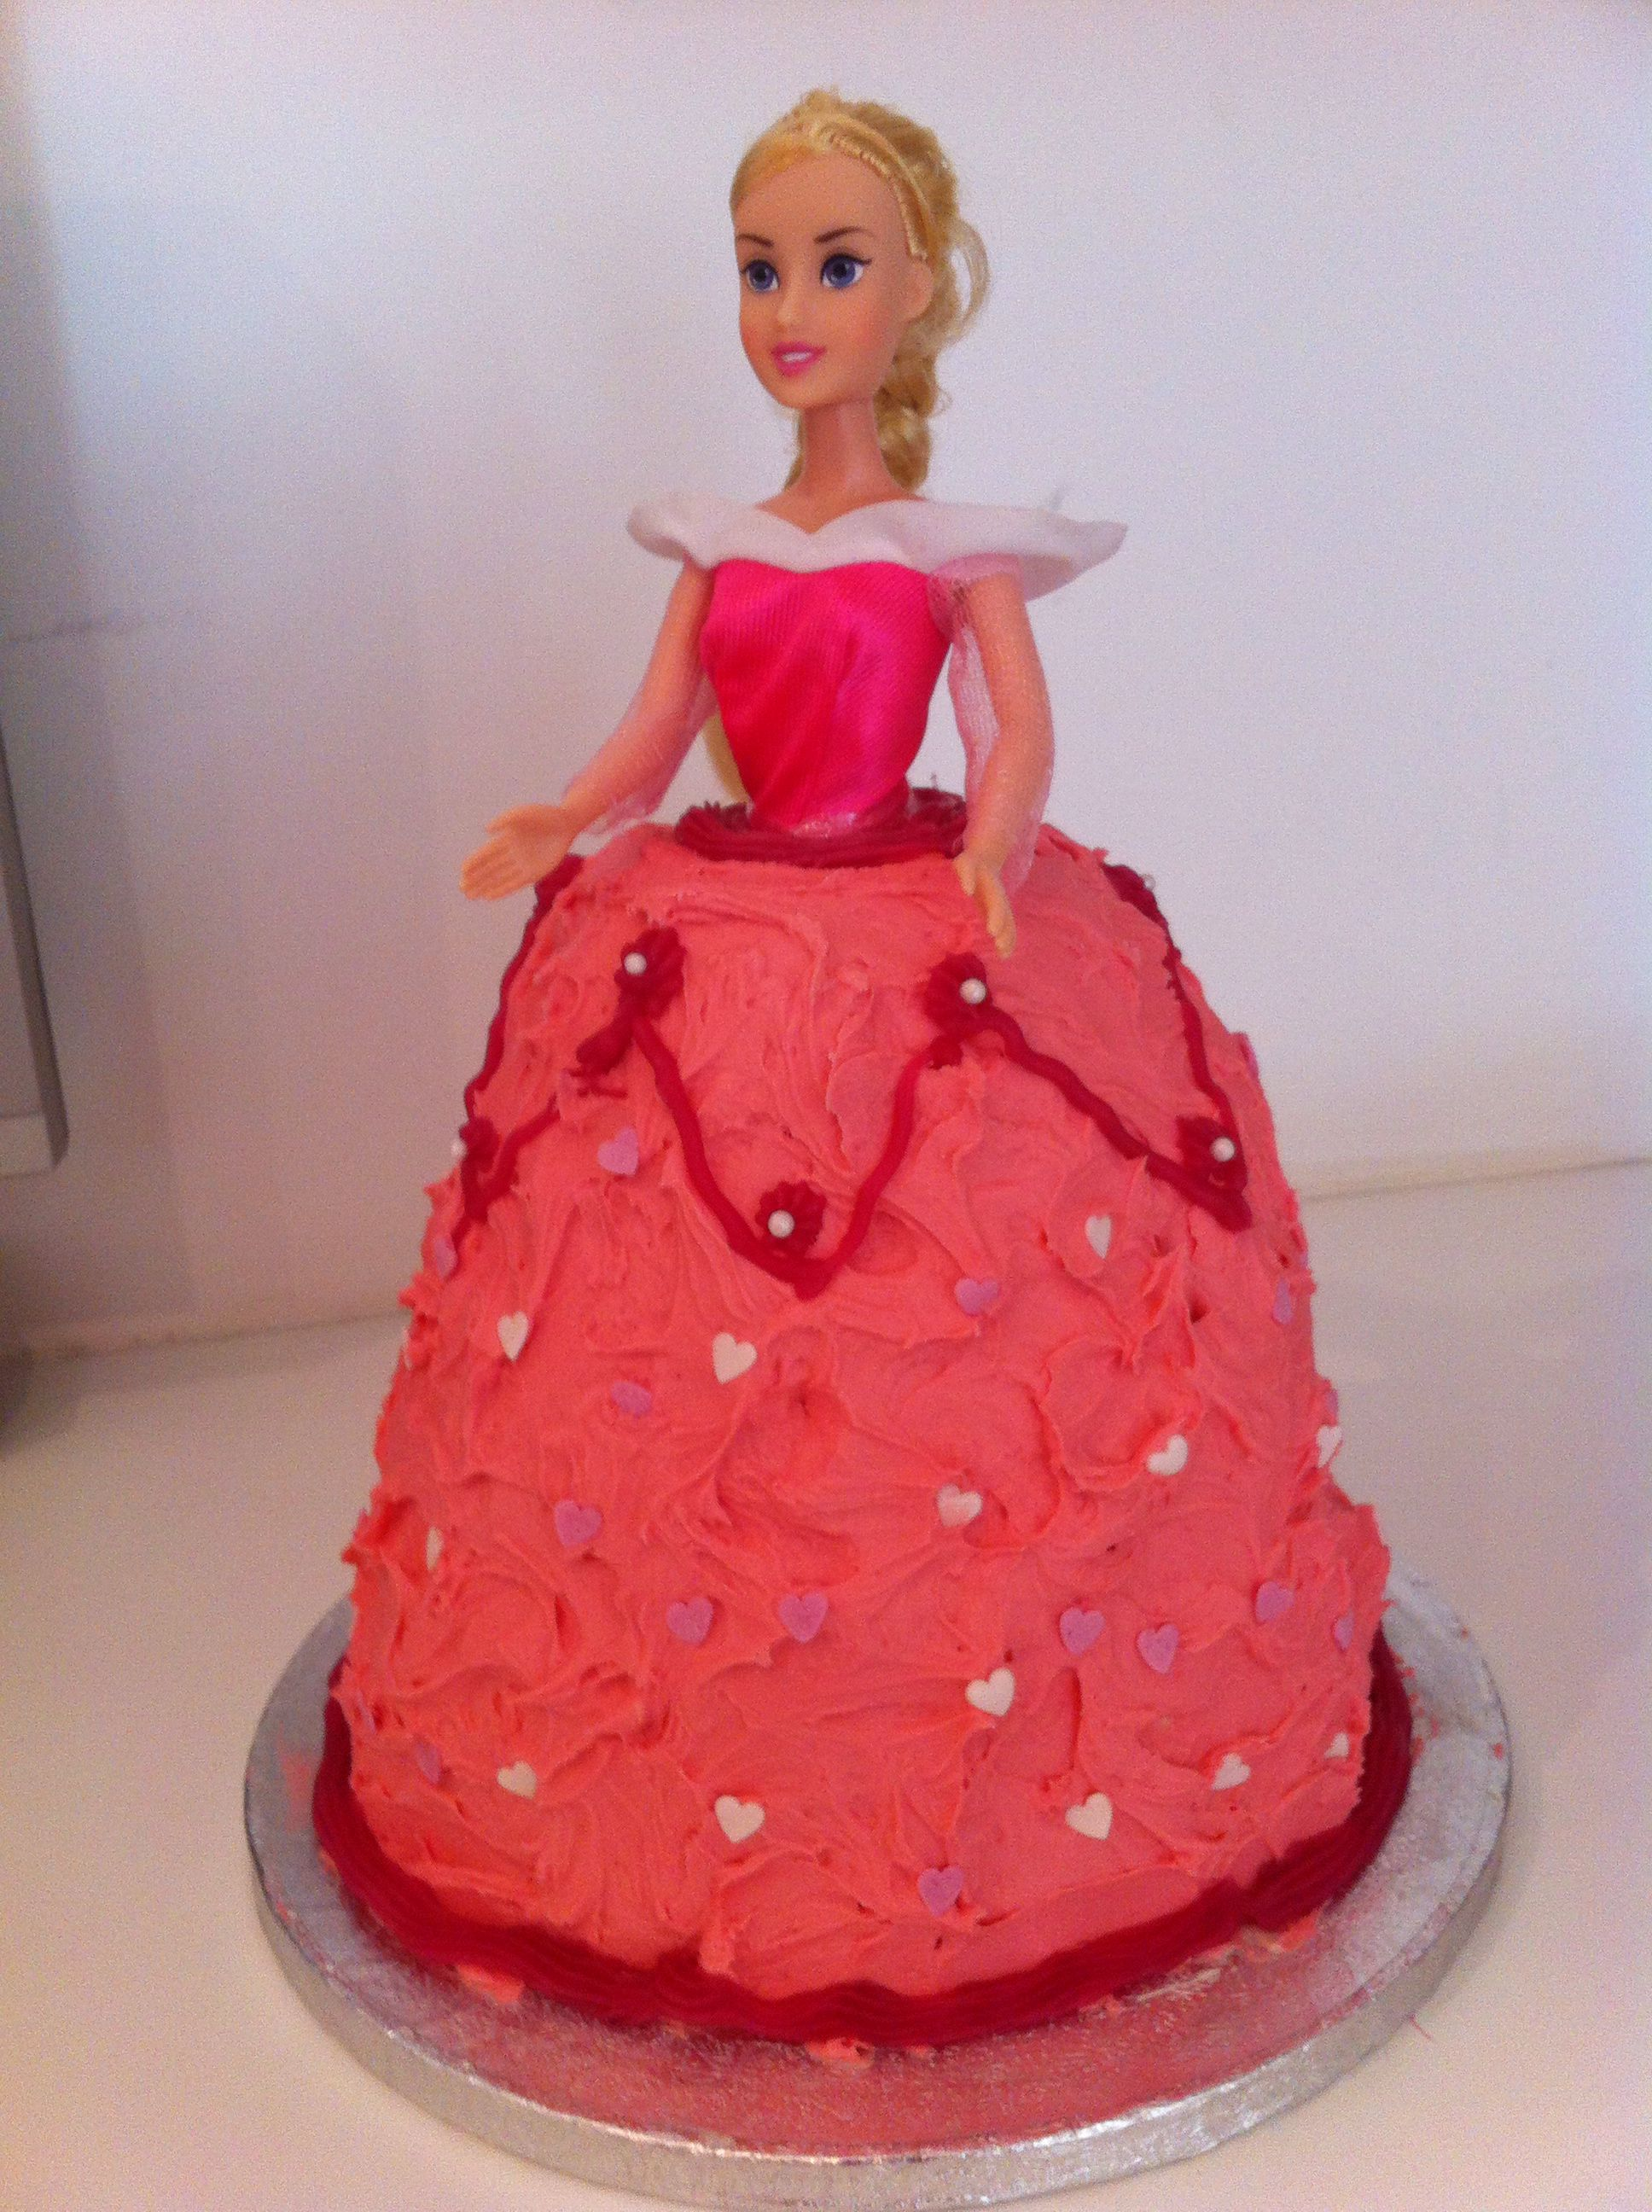 Gabys 3rd bday cake. Made by me